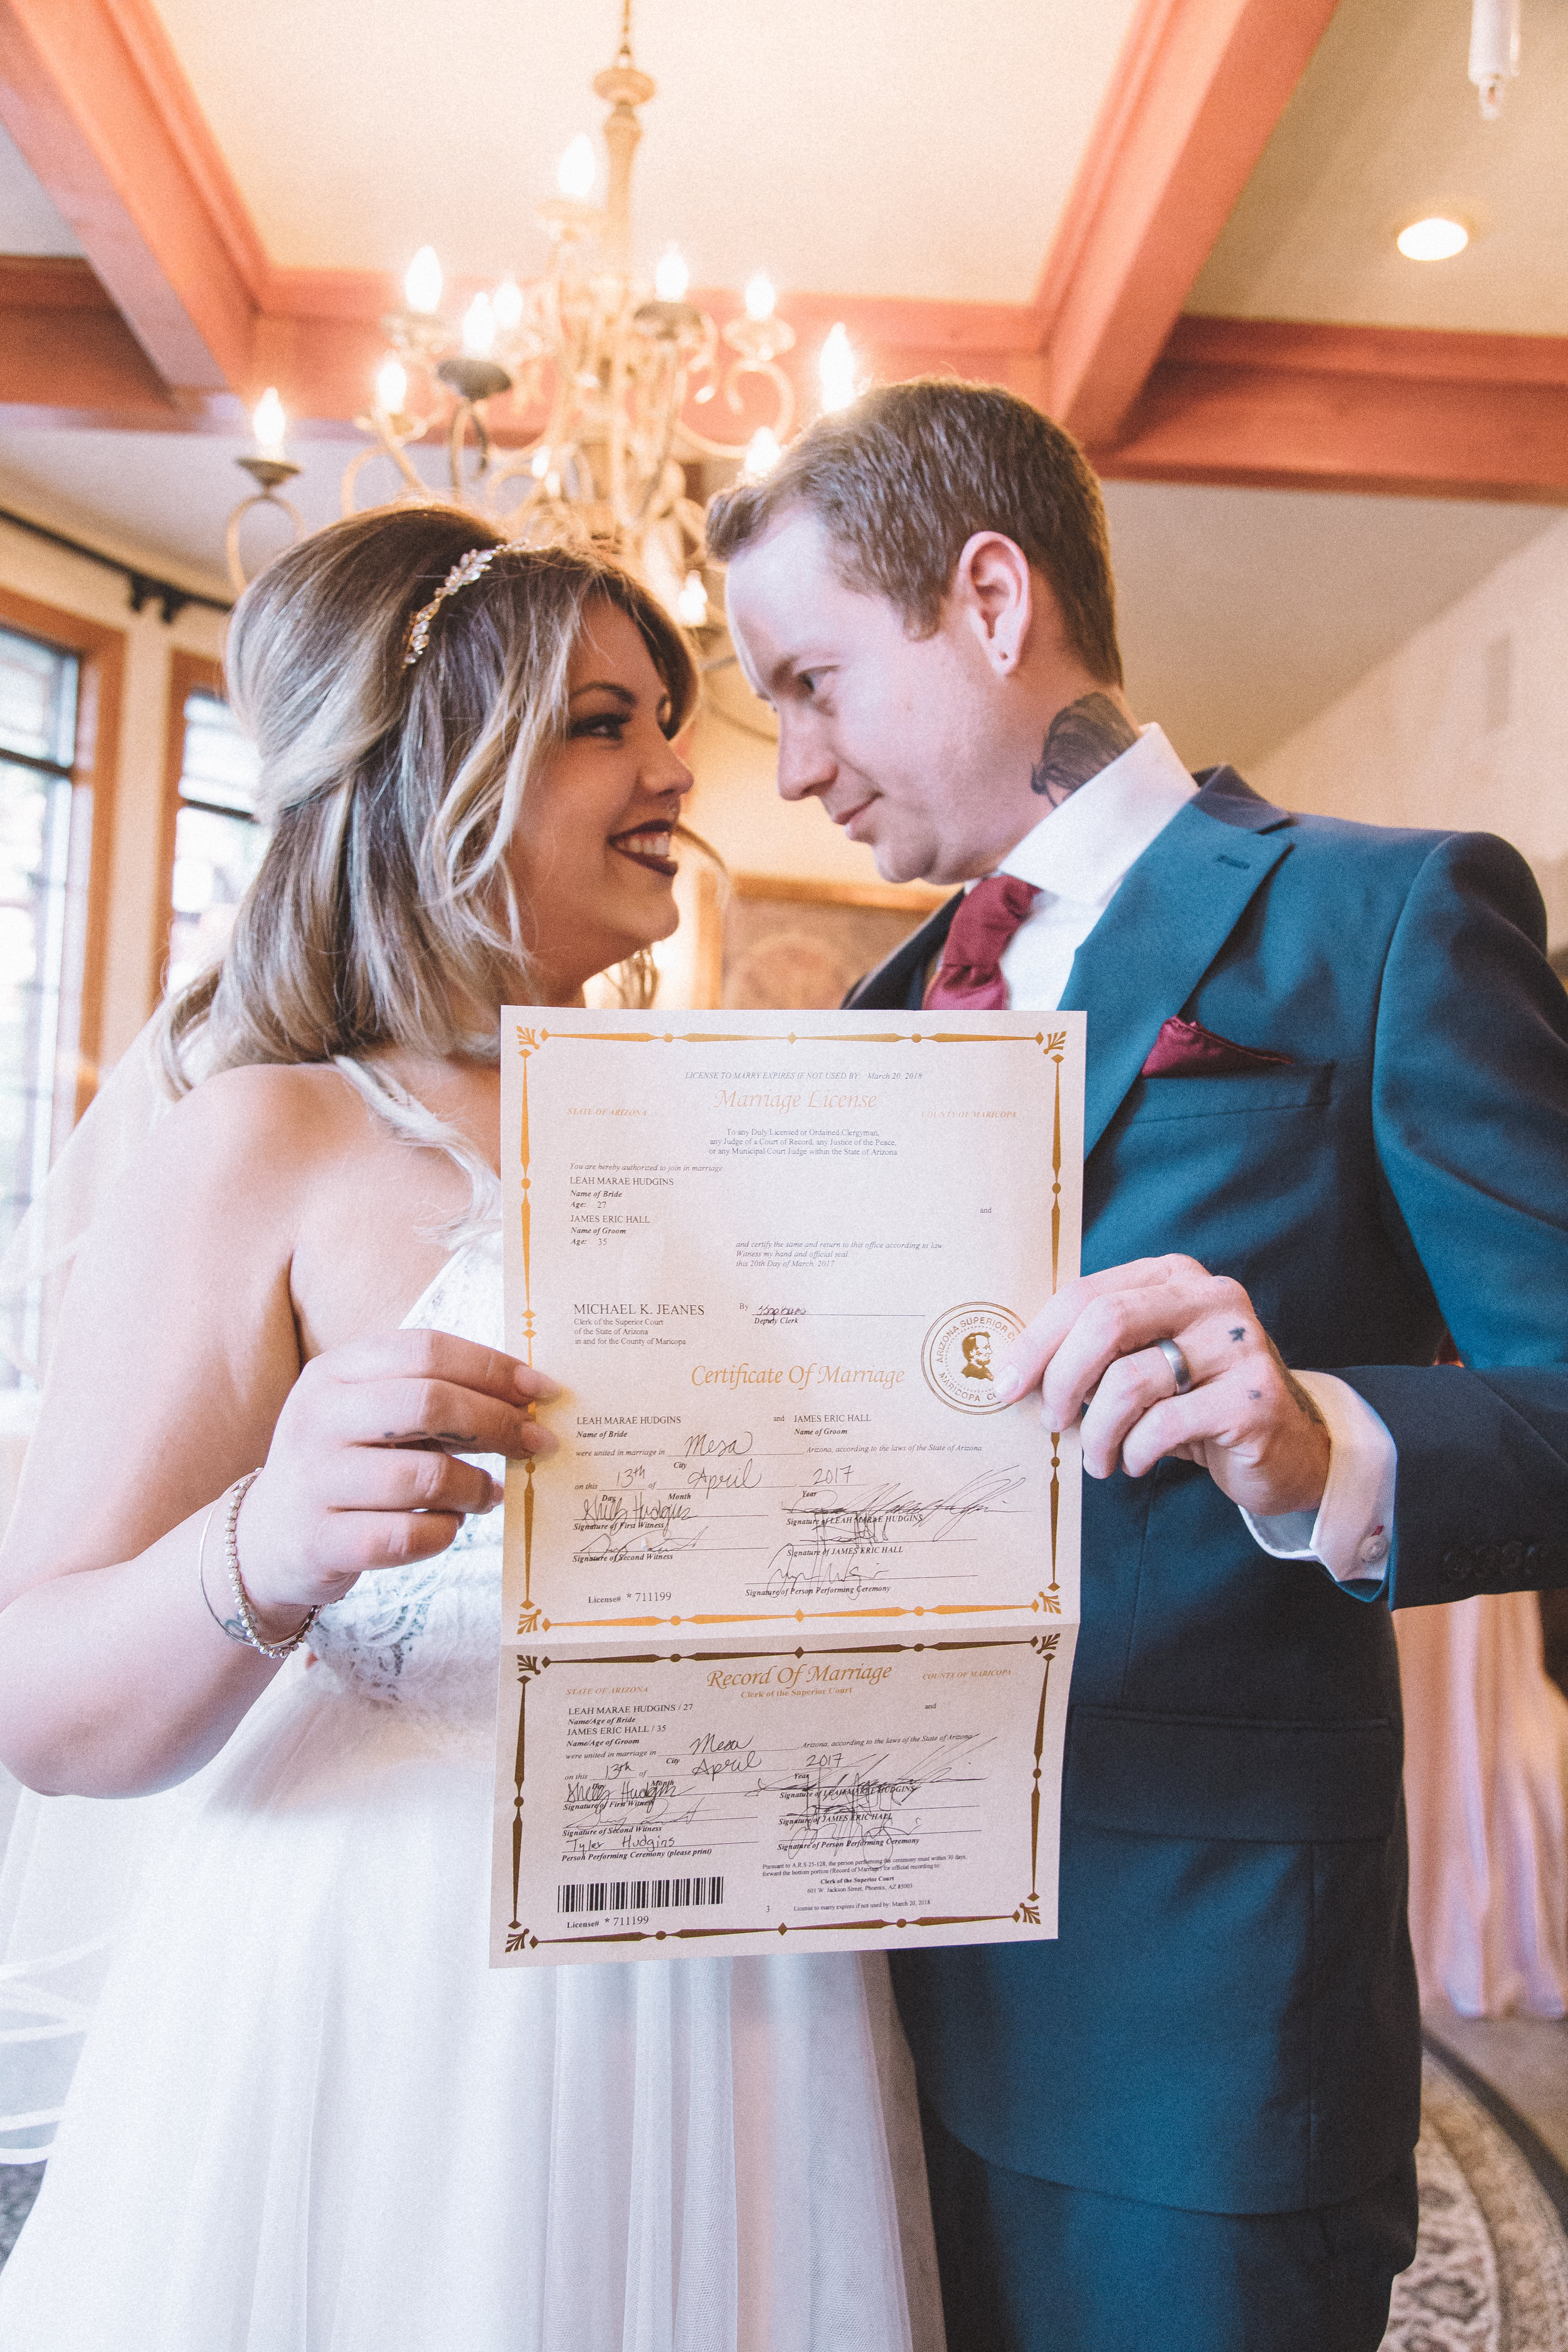 Marriage License - We have dedicated a whole blog post to getting your Marriage License (scroll down) – just know you will be spending an extra $75 and maybe more but it is necessary to seal the deal.